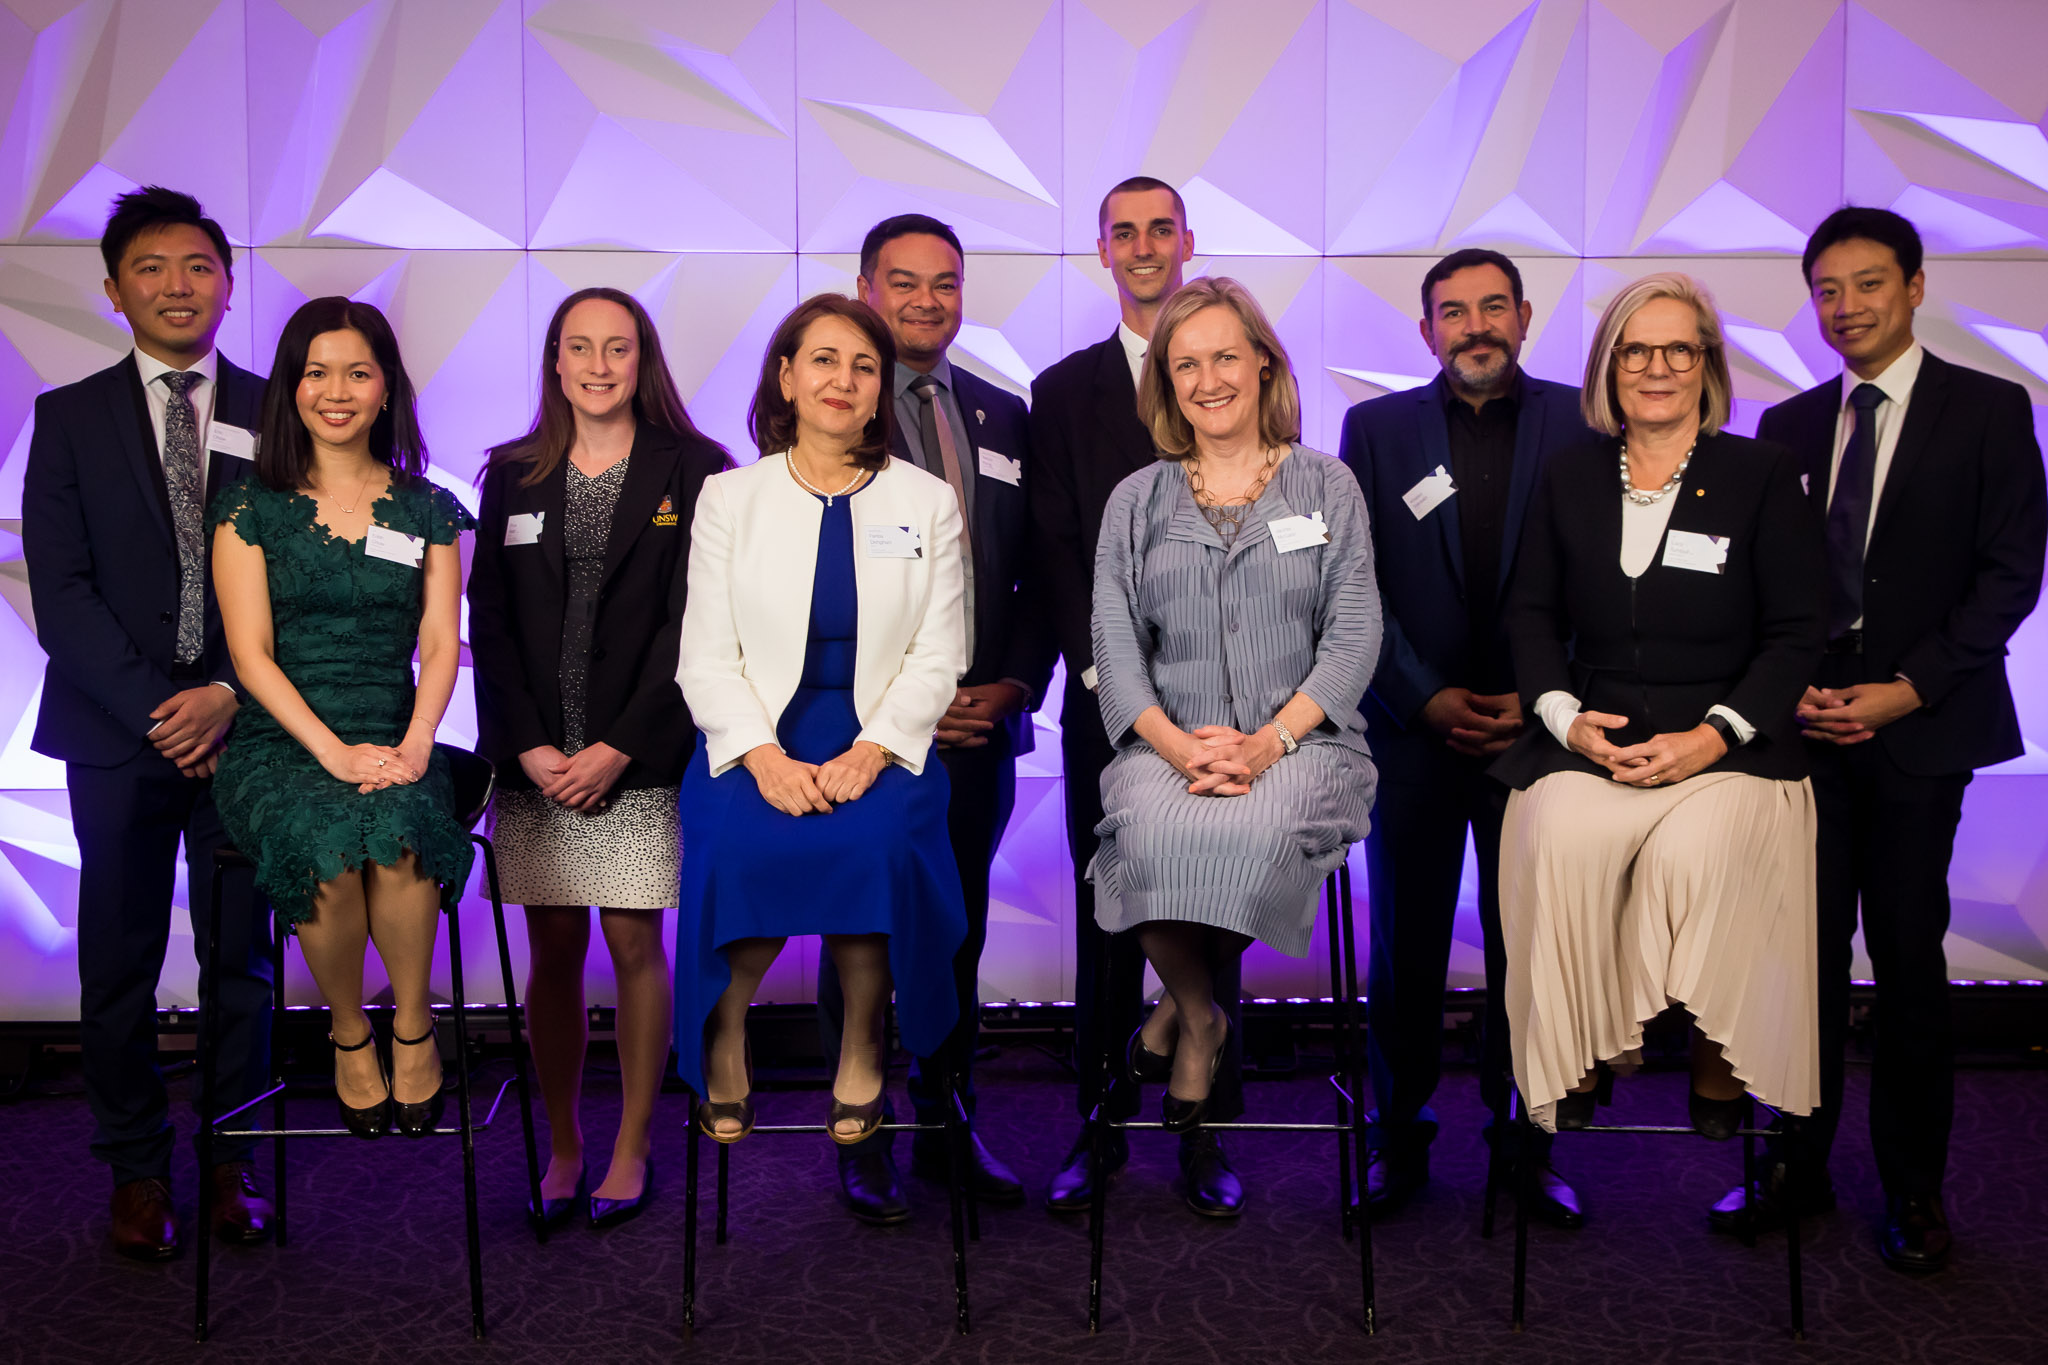 (2019 UNSW Alumni Award recipients: back, from left, Associate Professor Eric Chow, Prue Watt OAM, Associate Professor Kelvin Kong, Brody Smith, Khaled Sabsabi and Ke Sun, and front, from left, Dr Edith Chow, Professor Fariba Dehghani,  Jacinta McCann and  Dr Lucy Turnbull AO (2018 winner).)